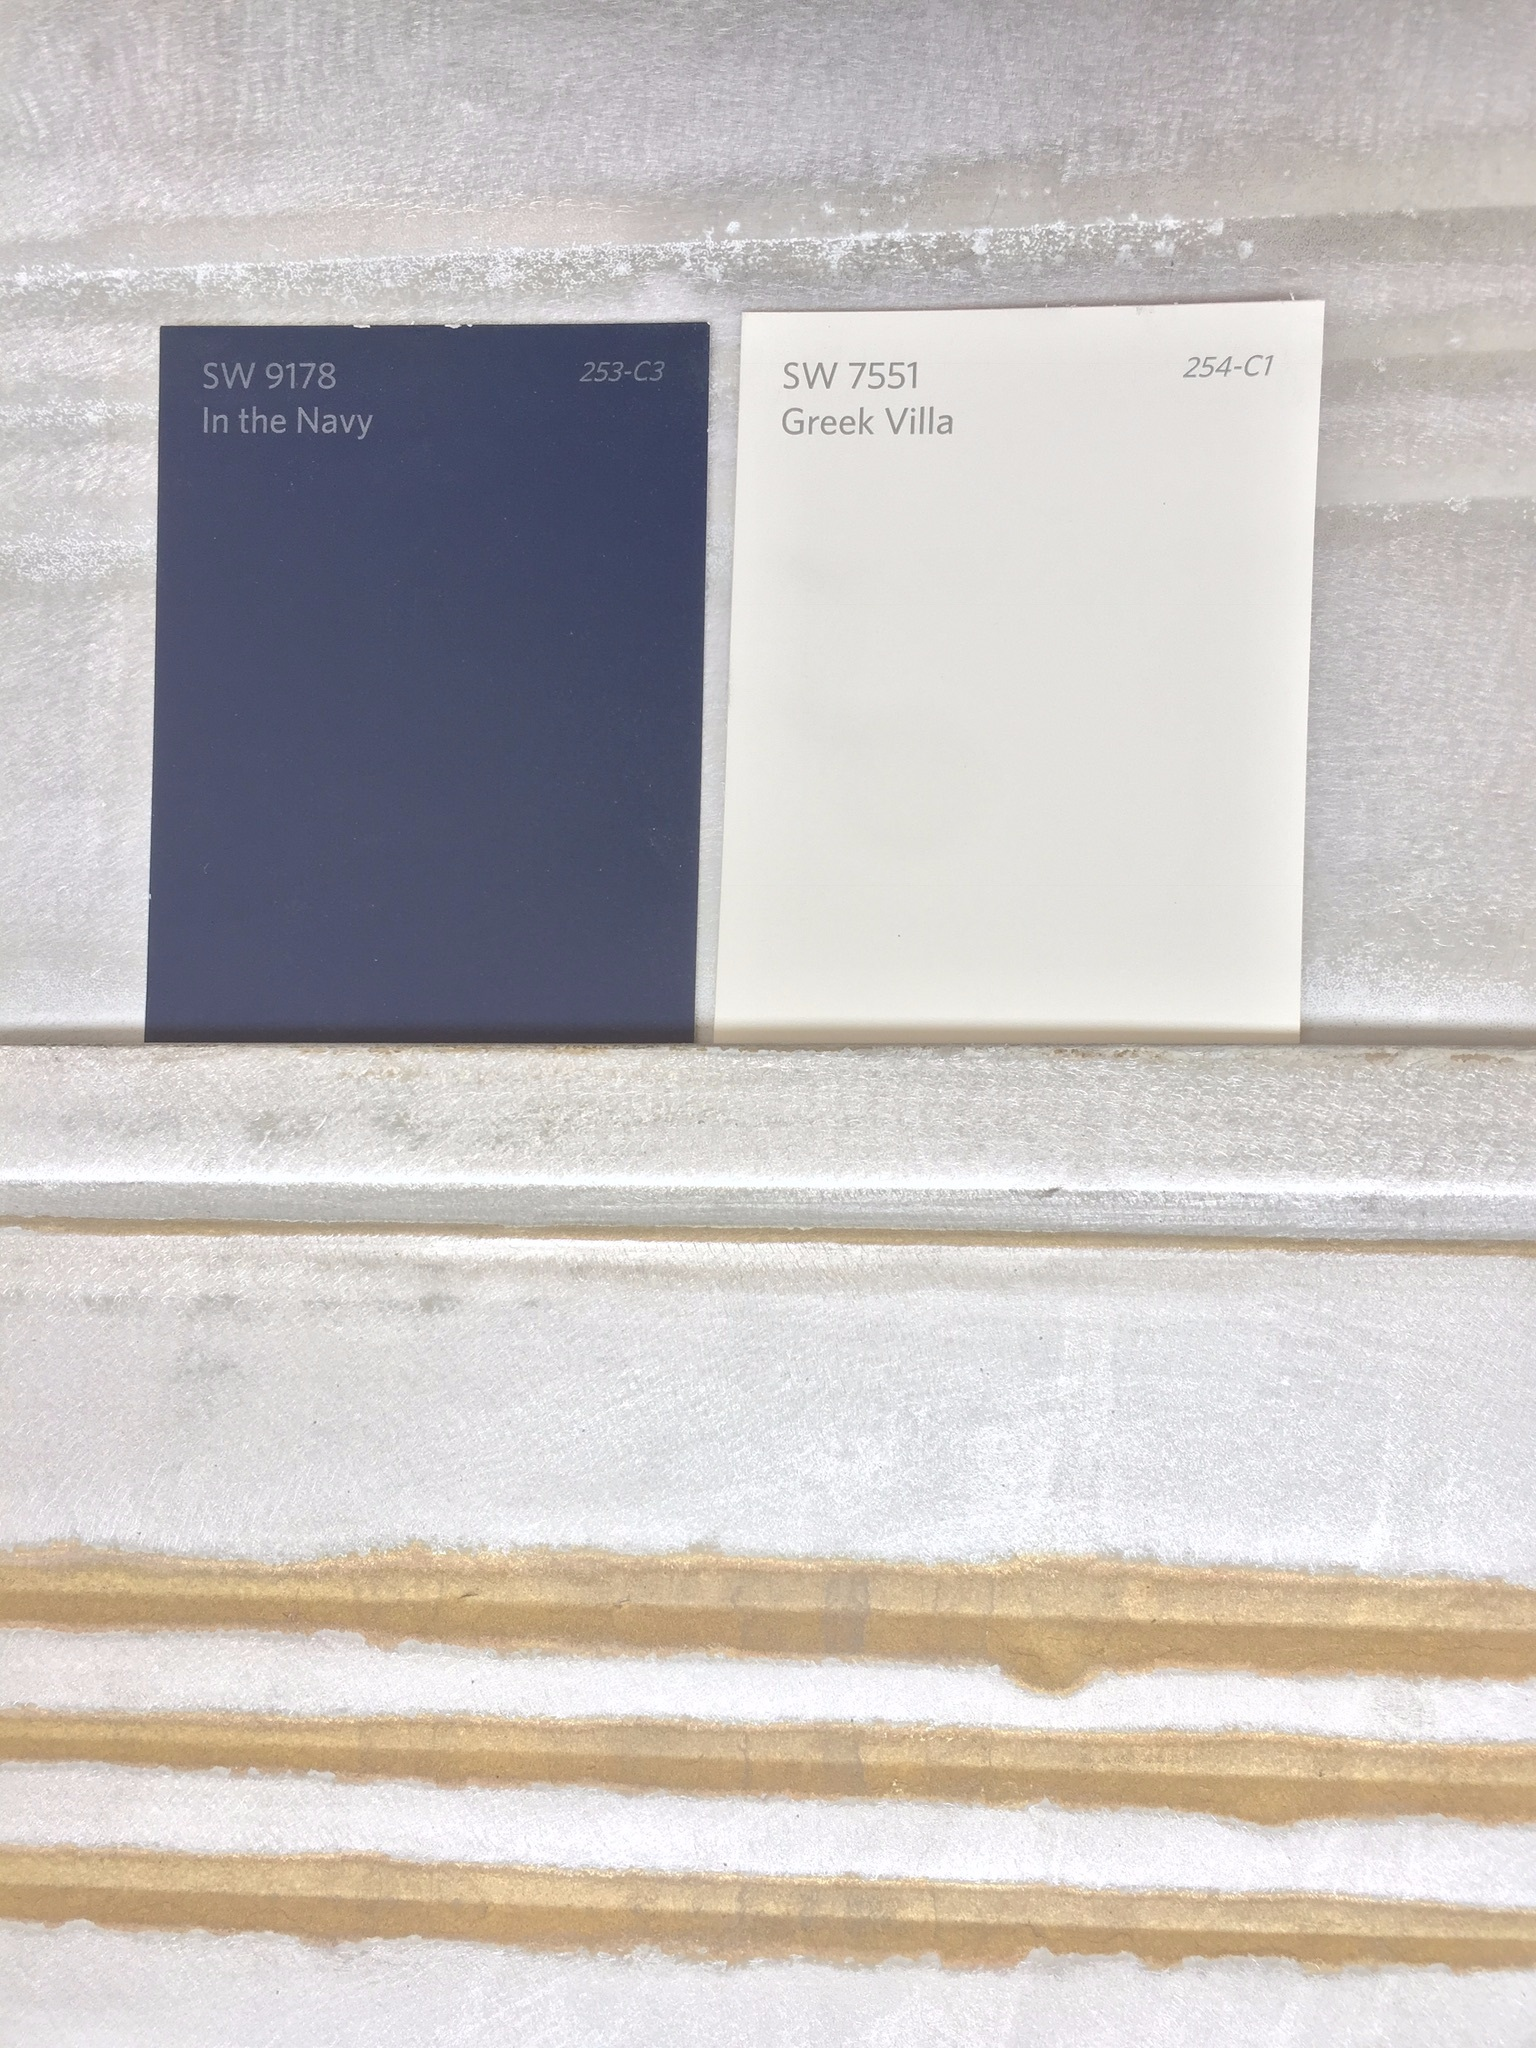 When we were picking out our exterior paint colors. Love this color combo of navy, off-white, silver and just a touch of gold!